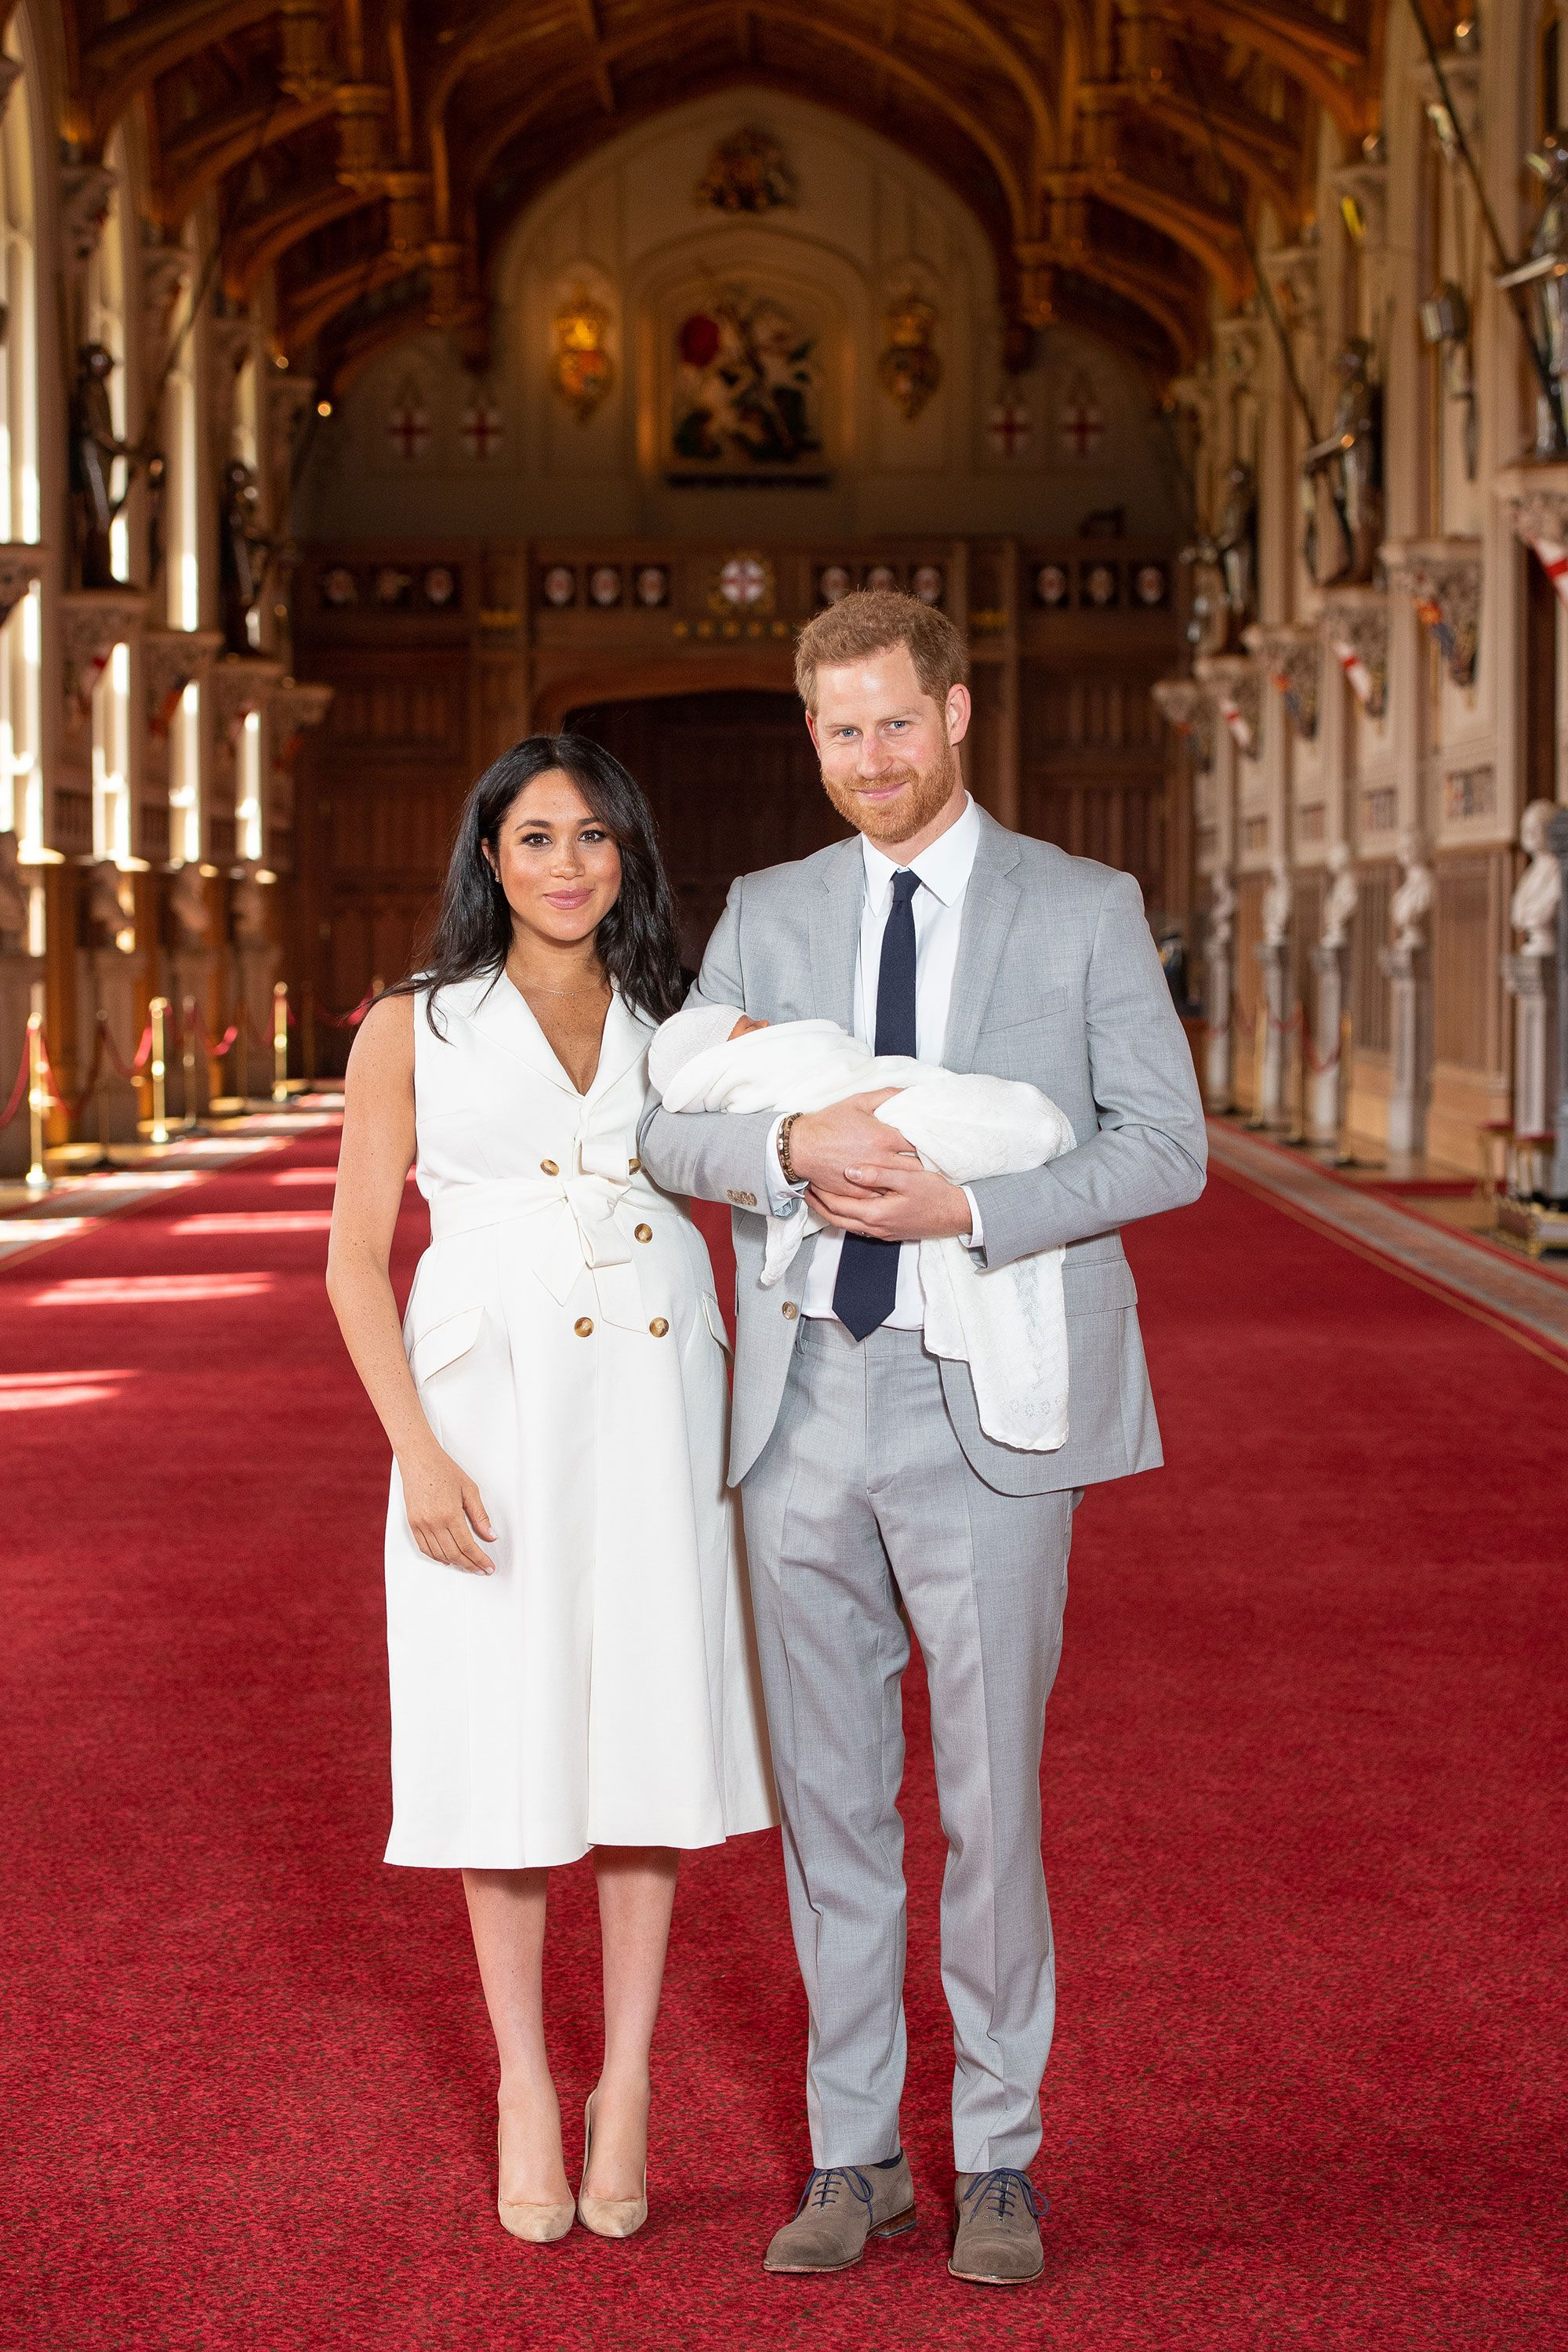 The Duchess of Sussex wears a white dress for her first post-baby appearance